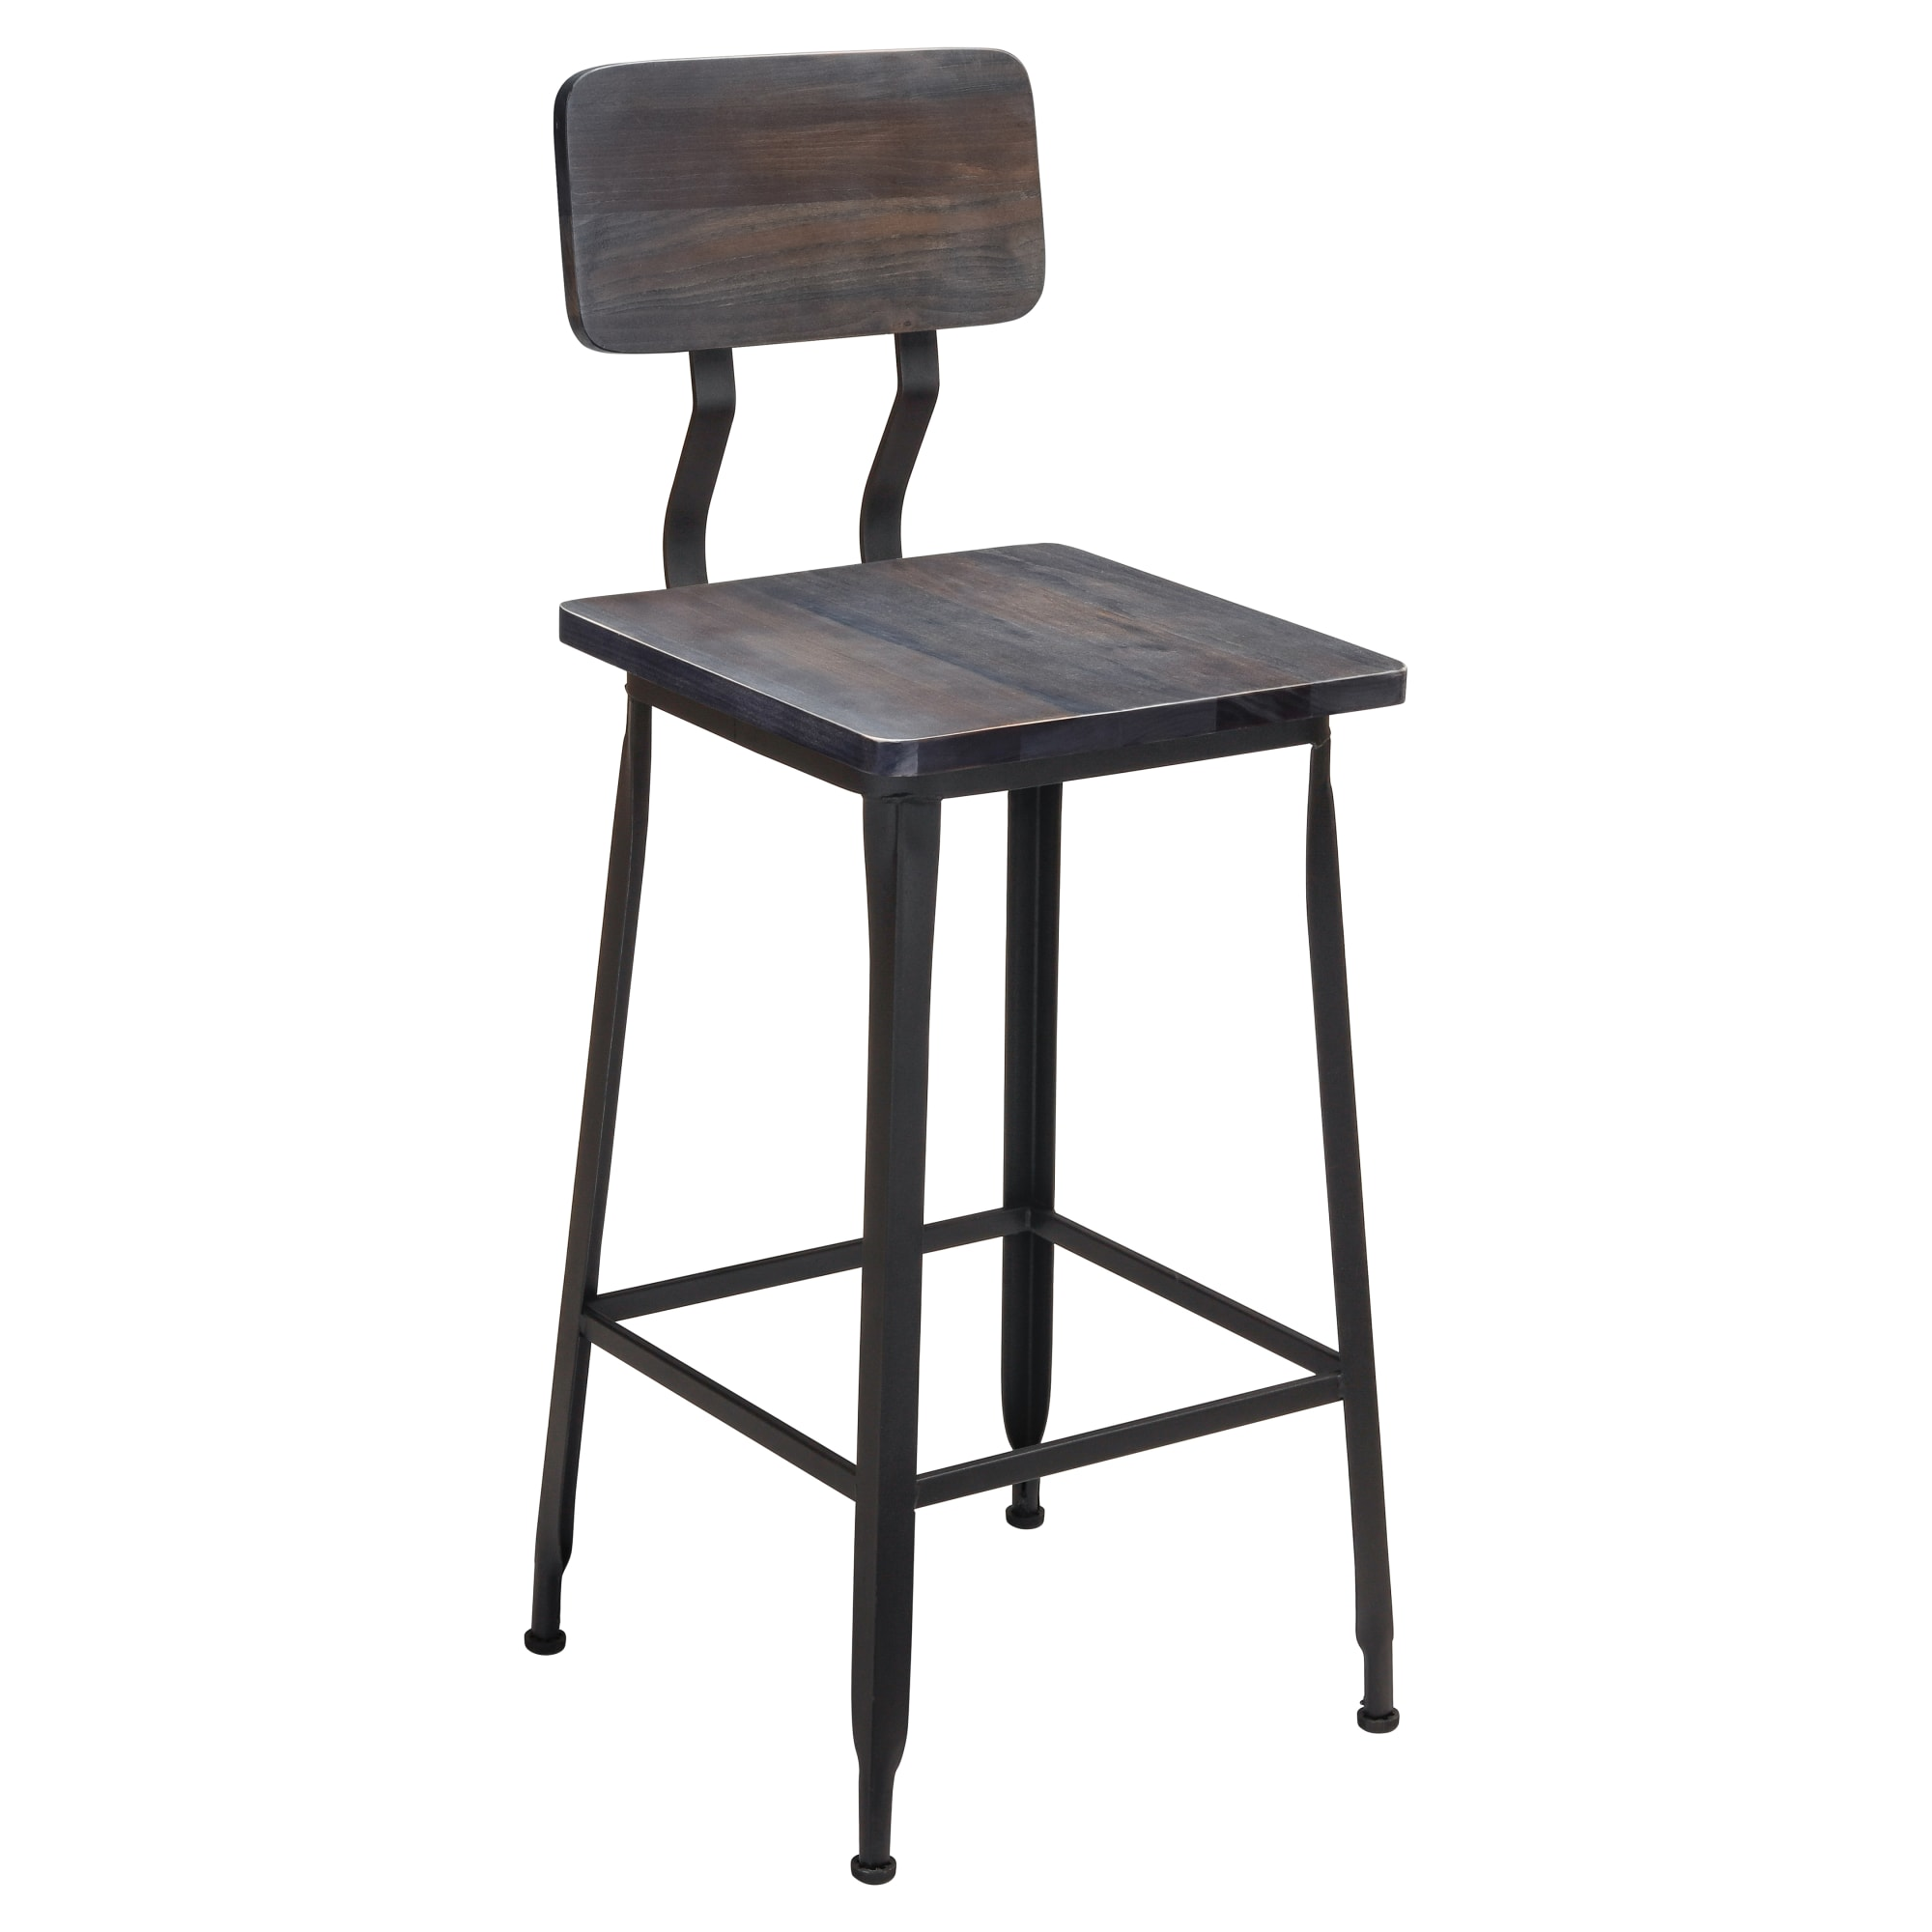 Industrial Bar Stool with Wood Back & Seat with Industrial Bar Stool with Wood Back & Seat